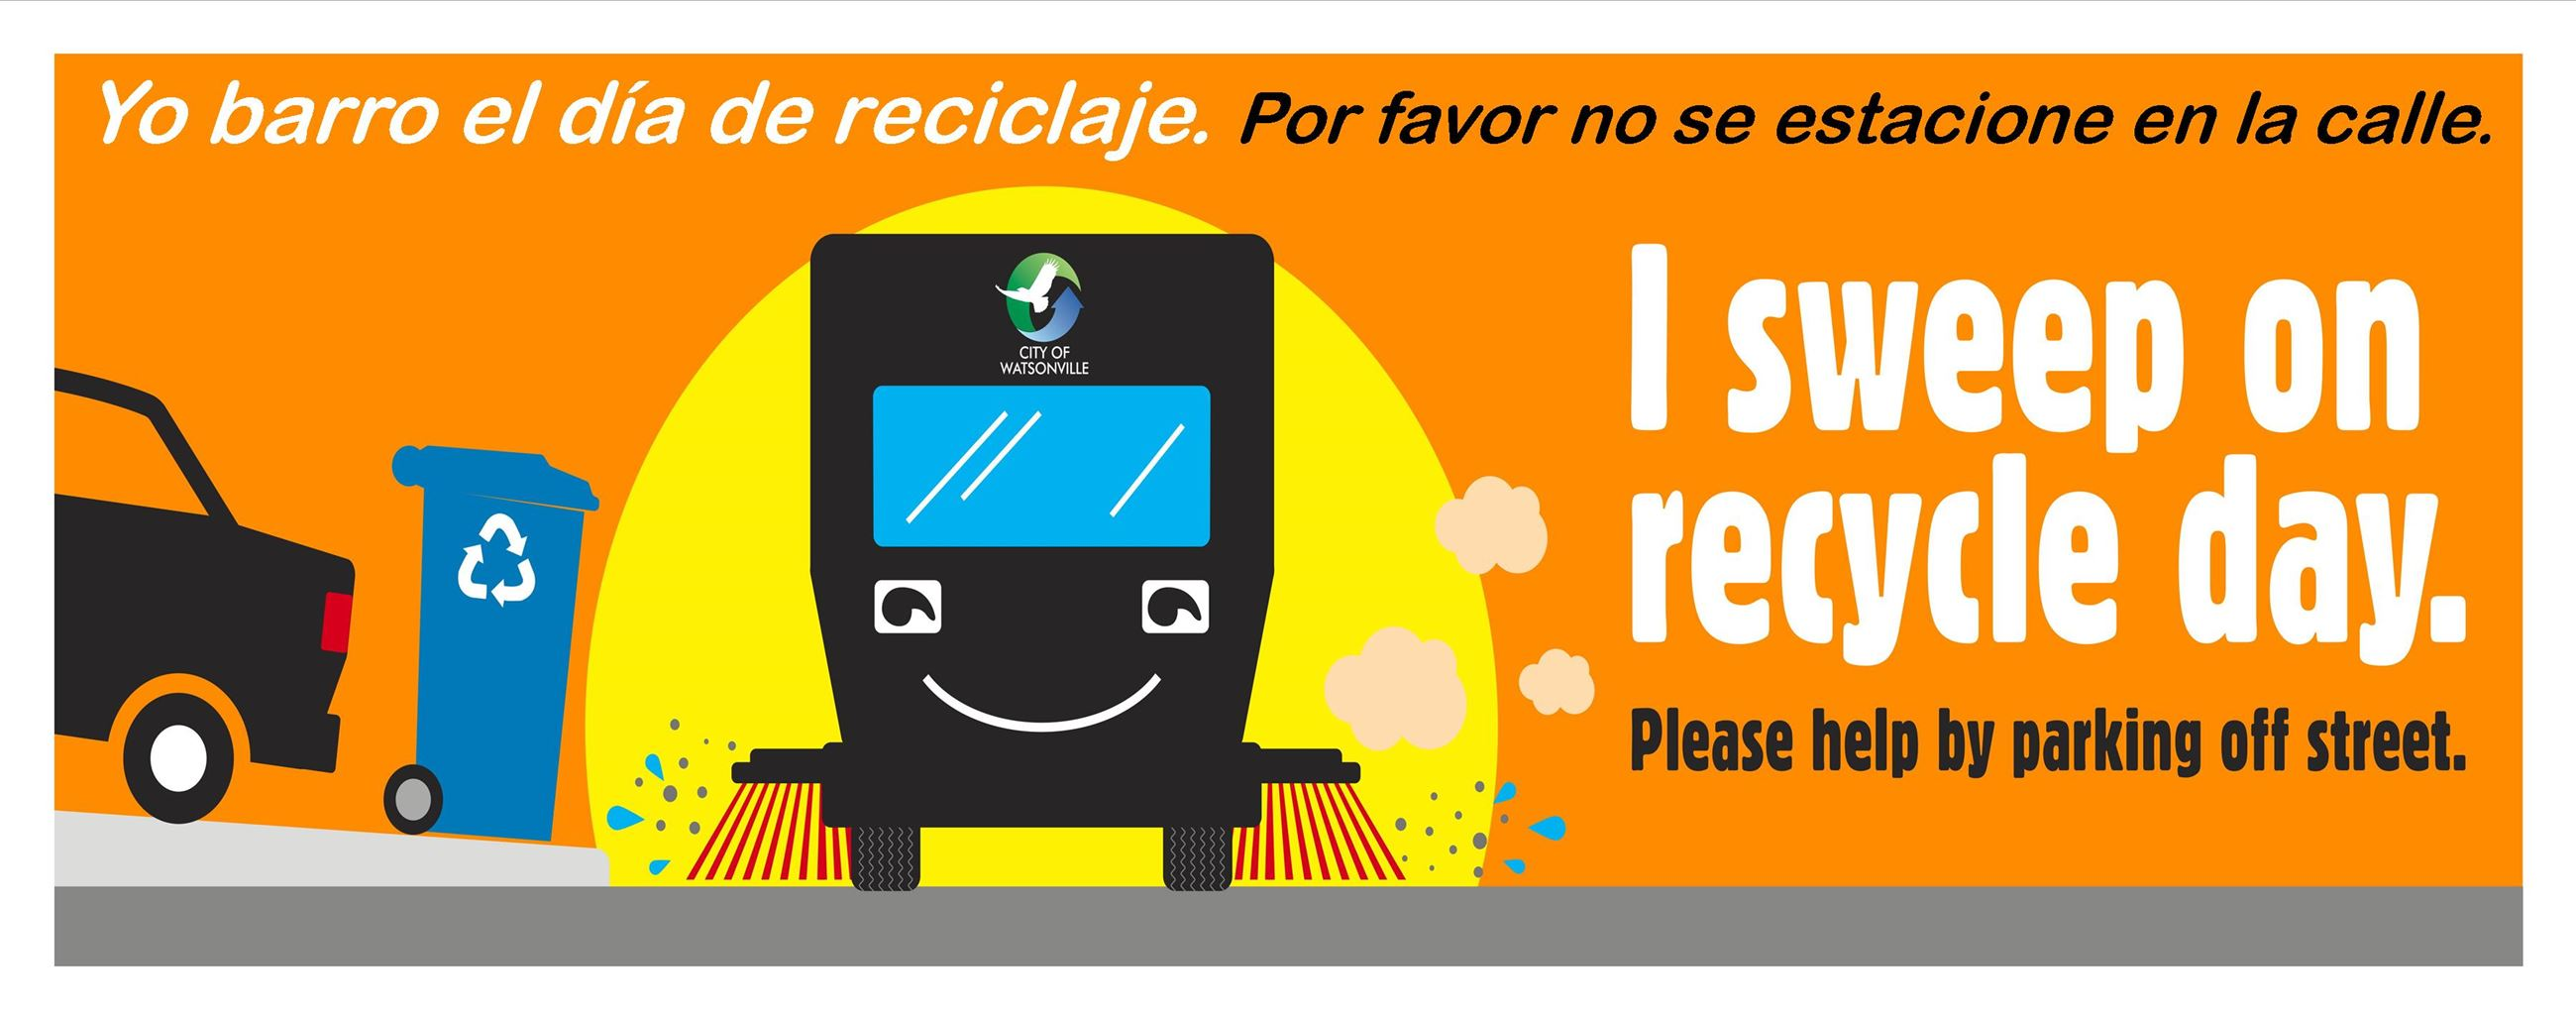 Street Sweeper Logo: I can sweep on recycle day. Please help by parking off street.